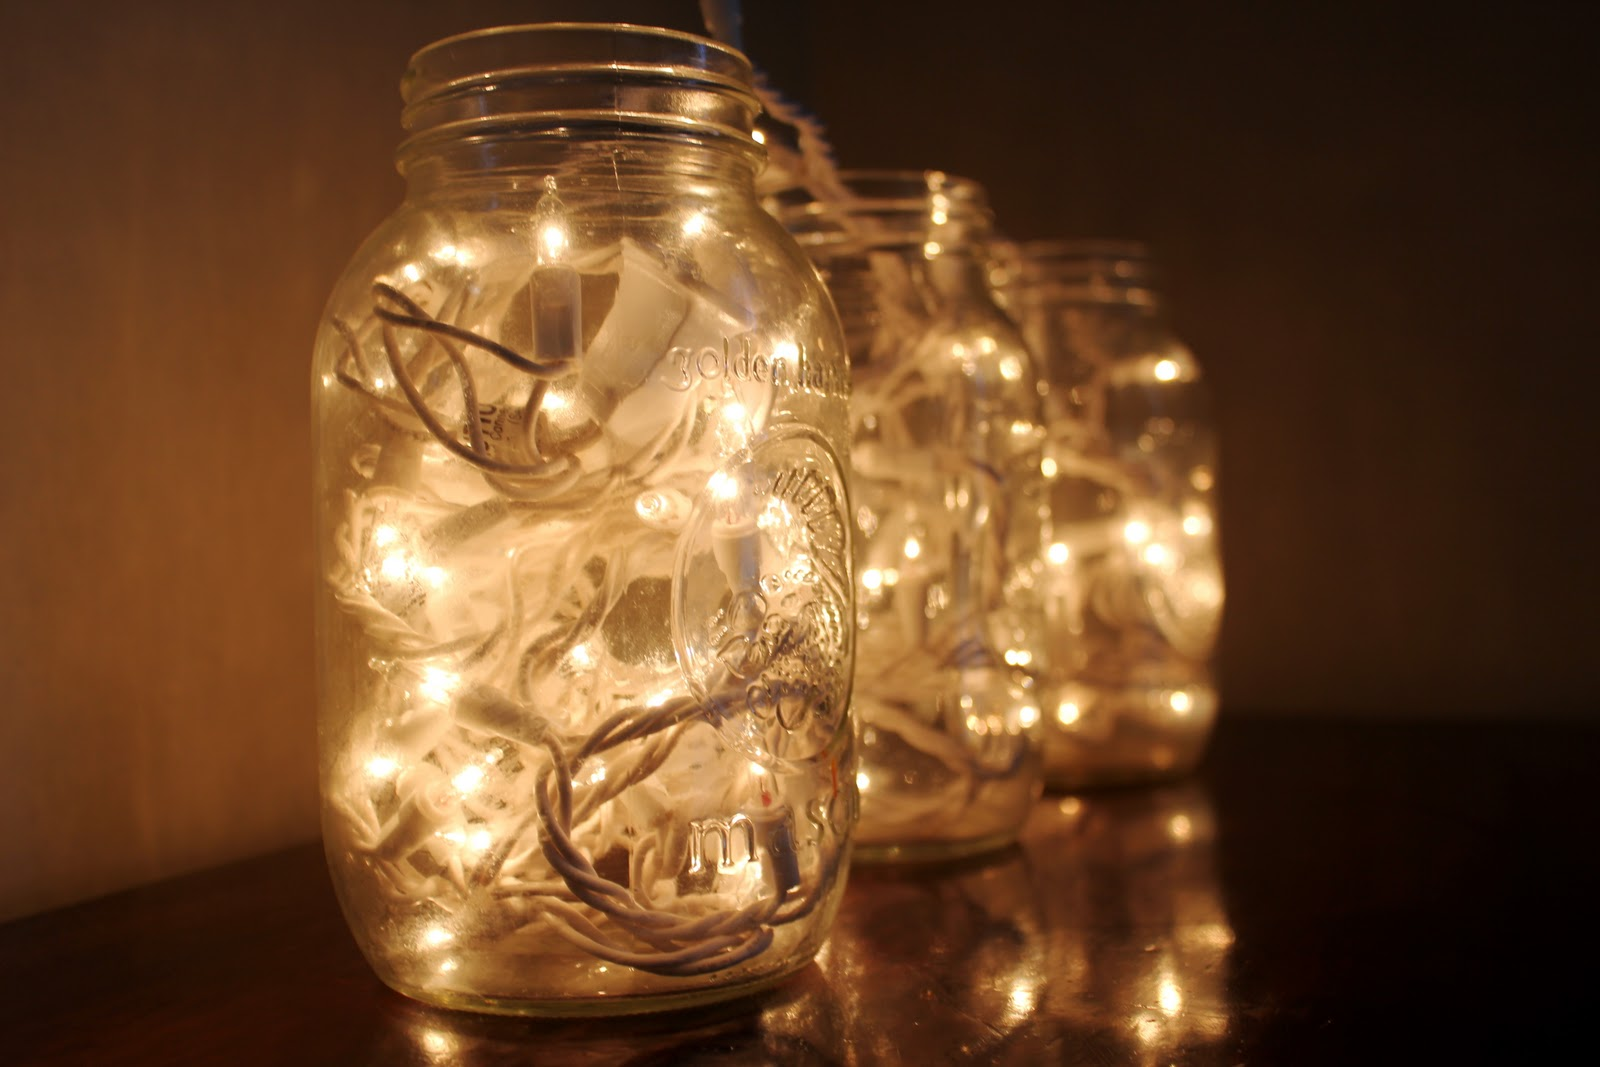 Lighting in a jar Christmas Christmas Snydle 40 Christmas Light Decorations In Jar All About Christmas